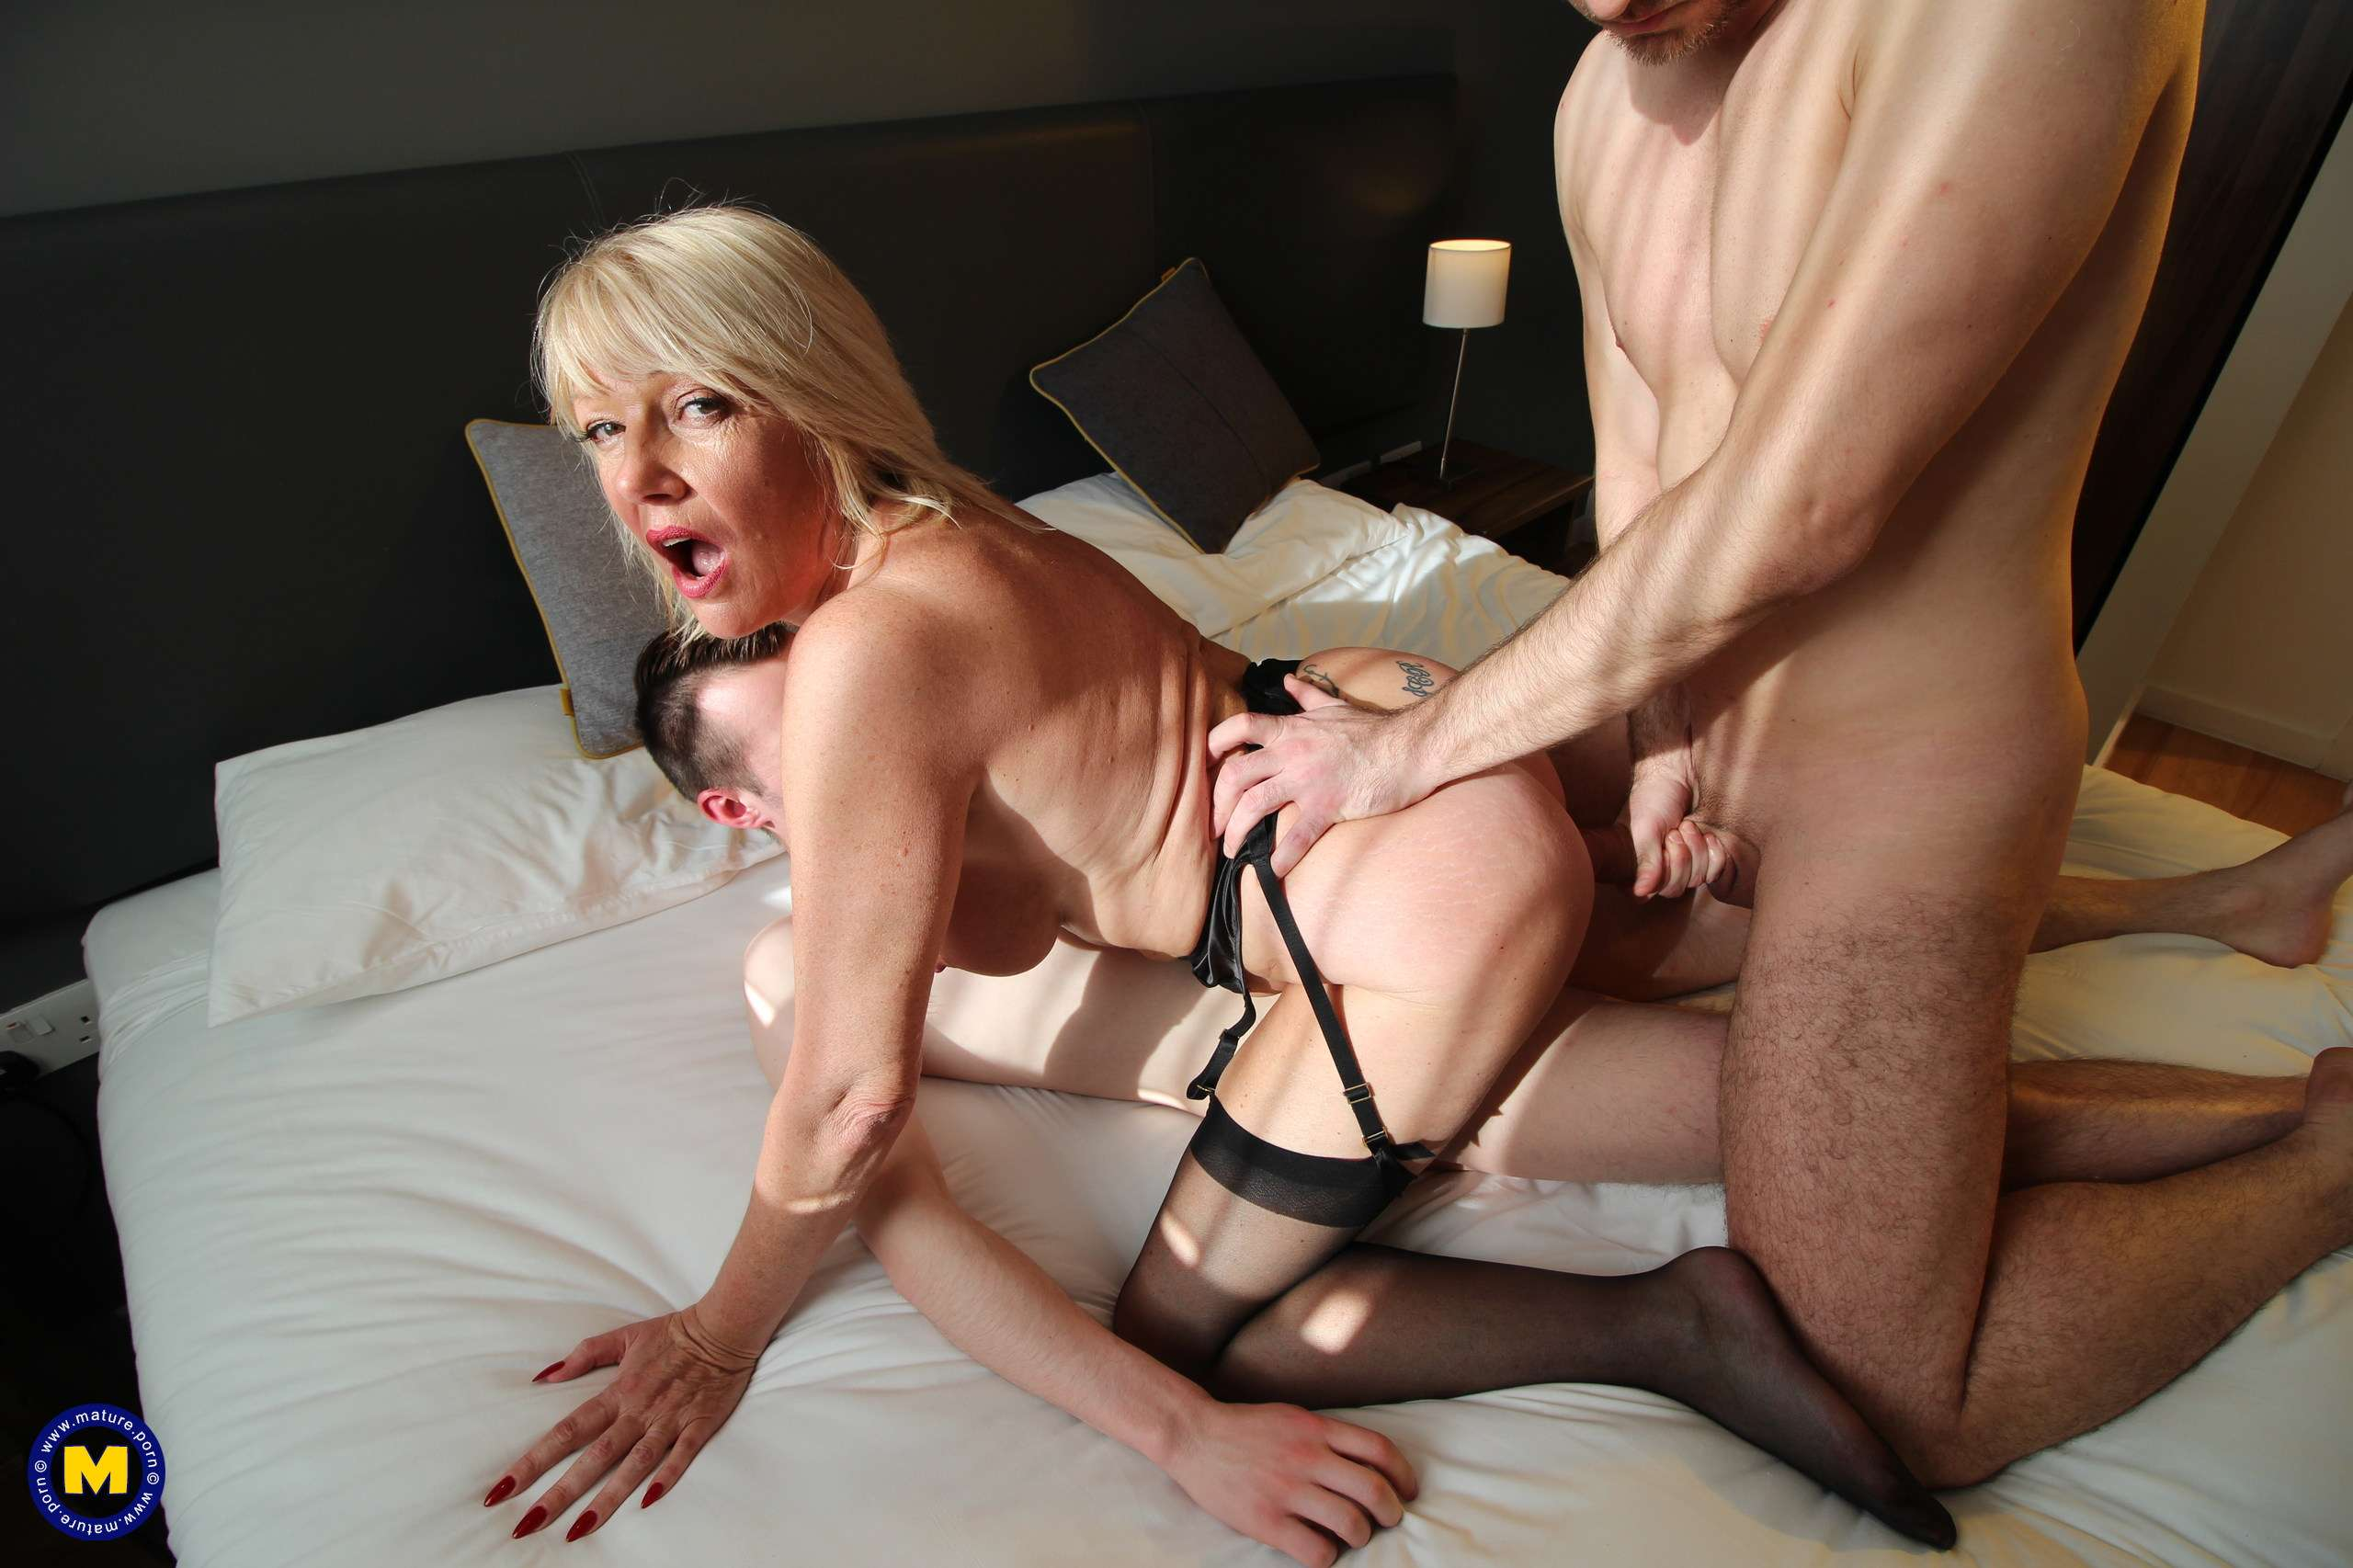 Naughty mature Amy gets a double penetration from two younger guys